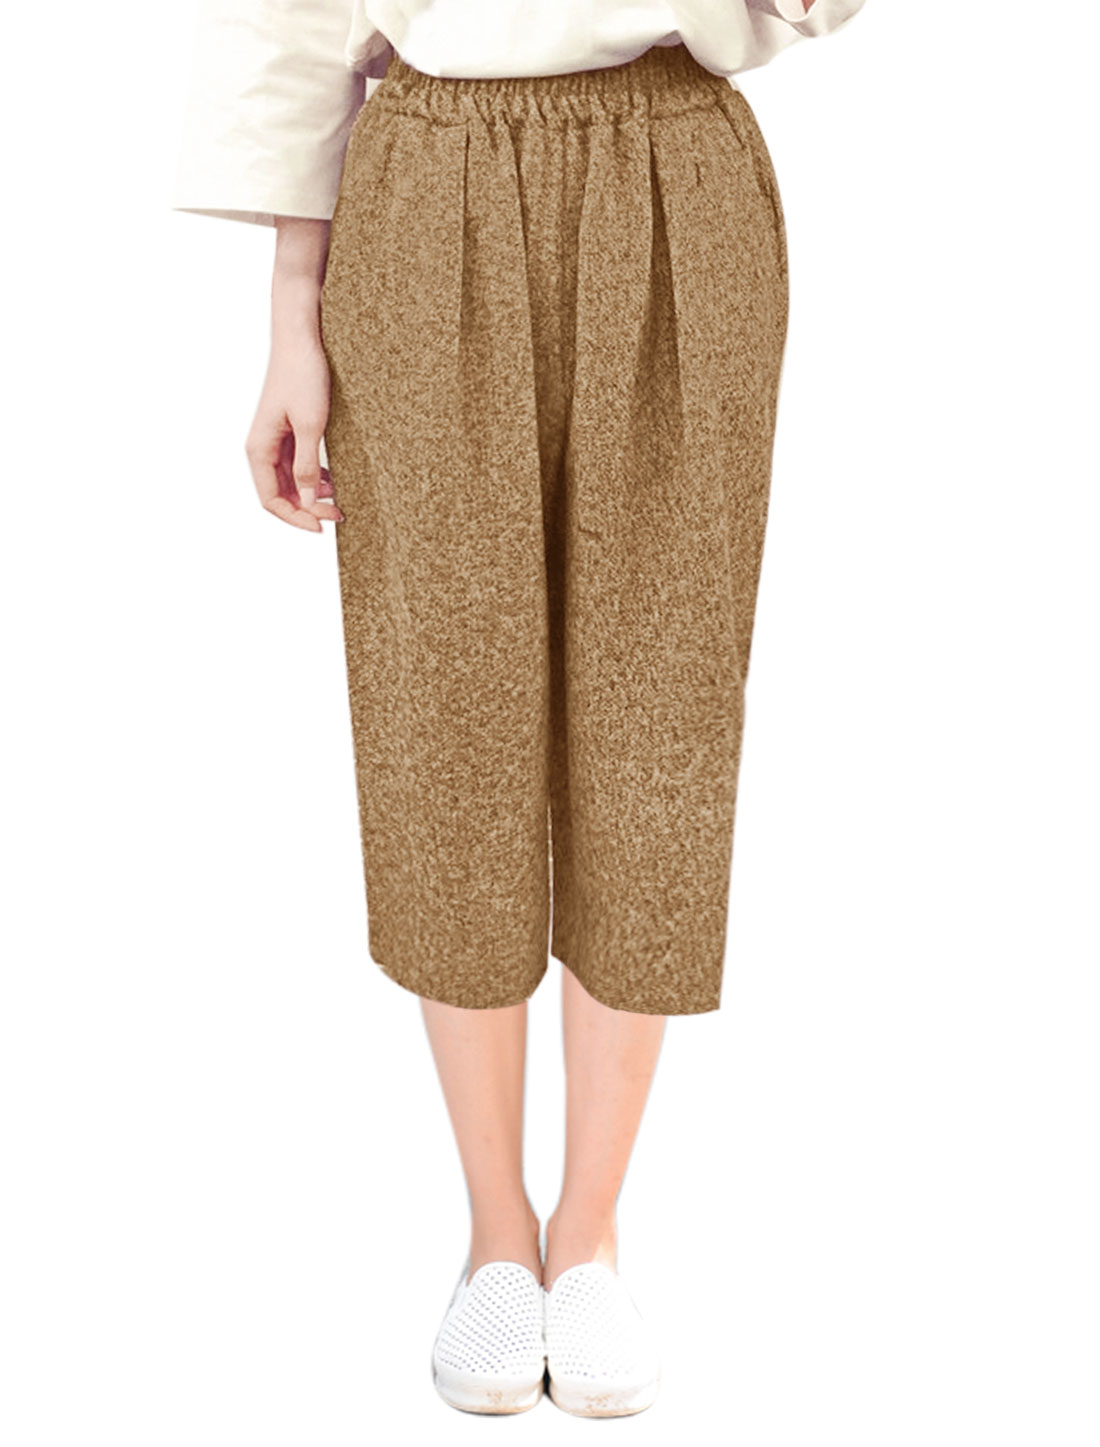 Ladies Stretchy Waist Capris Worsted Wide Leg Pants Beige XS